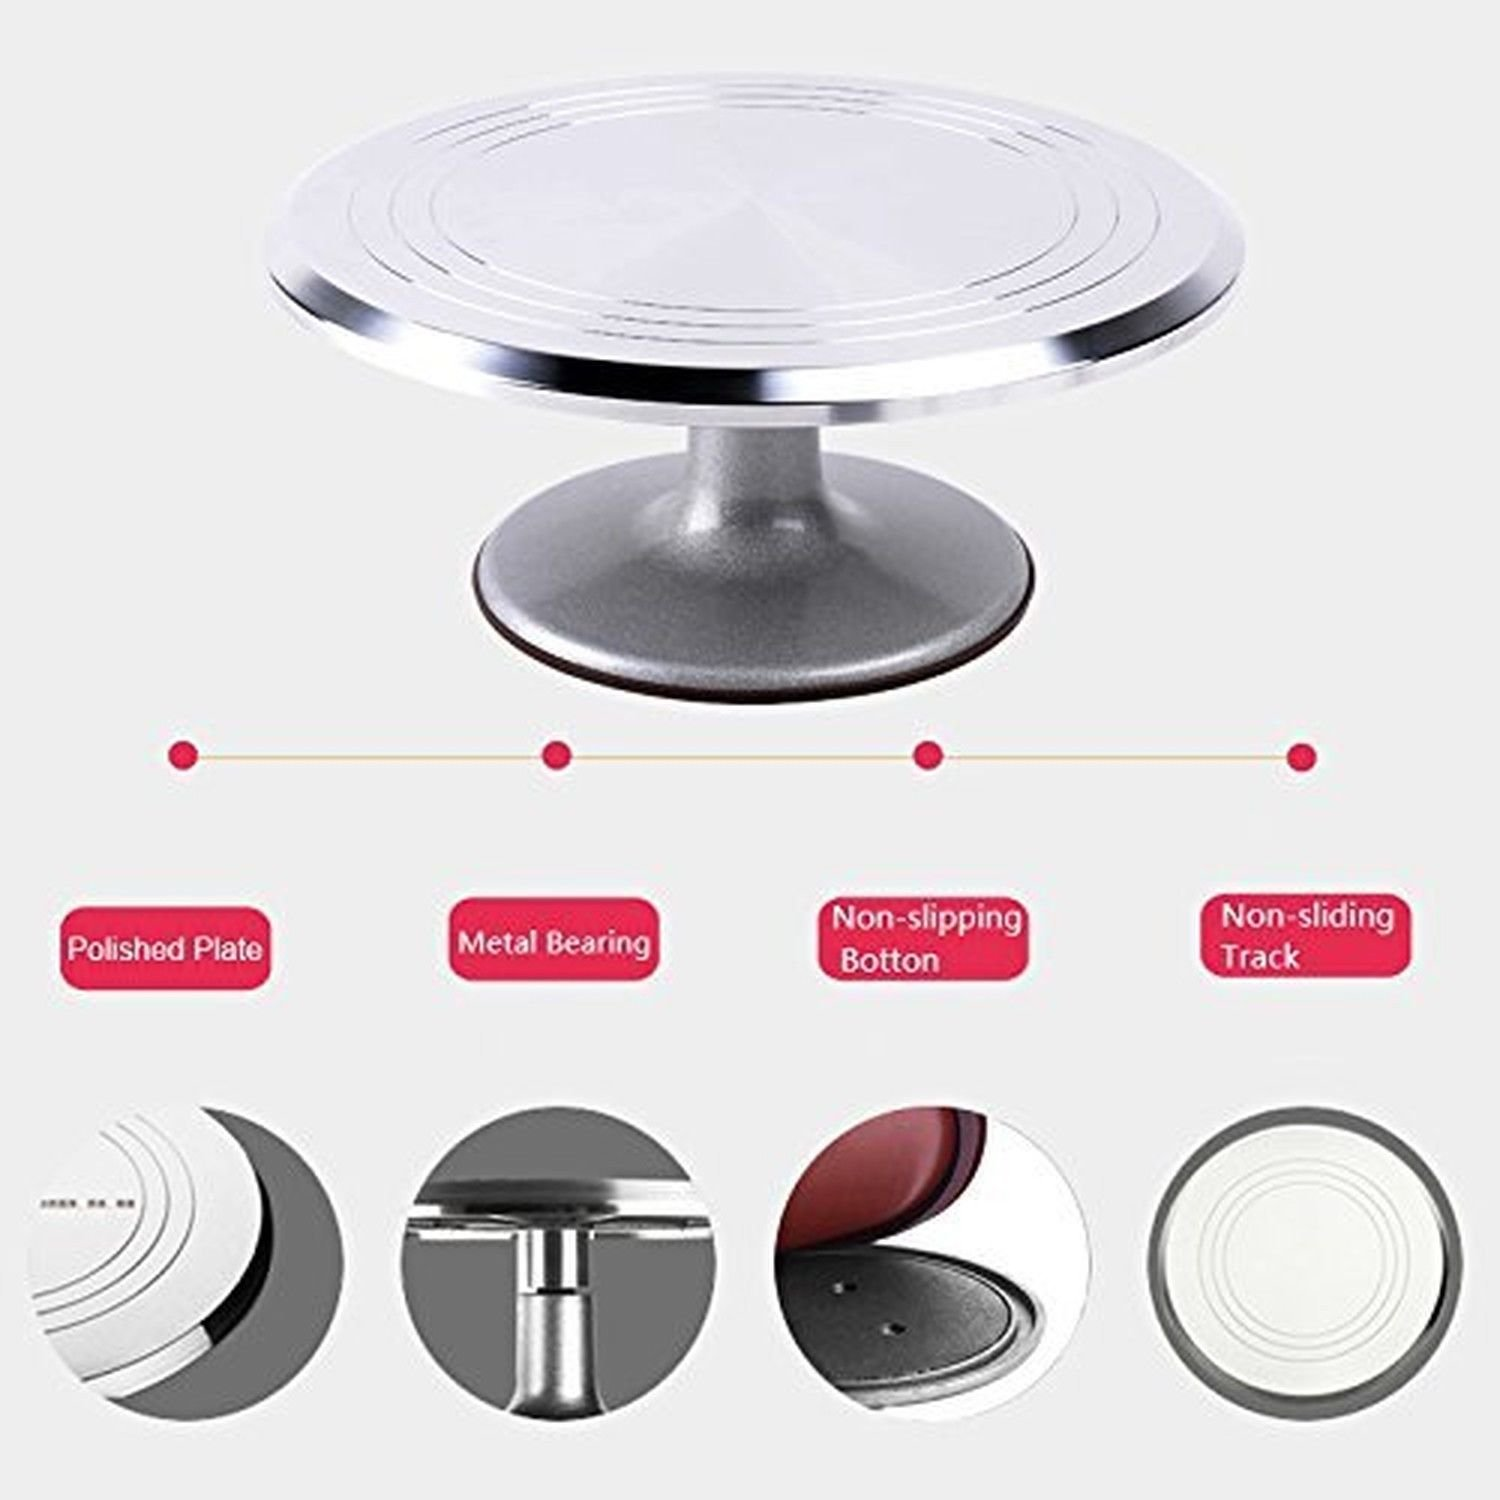 Aluminium Alloy Turntable 12 Inch Revolving Decorative Cake Stand Non-Slip Surface Keep Cake In Place While Your Decorate